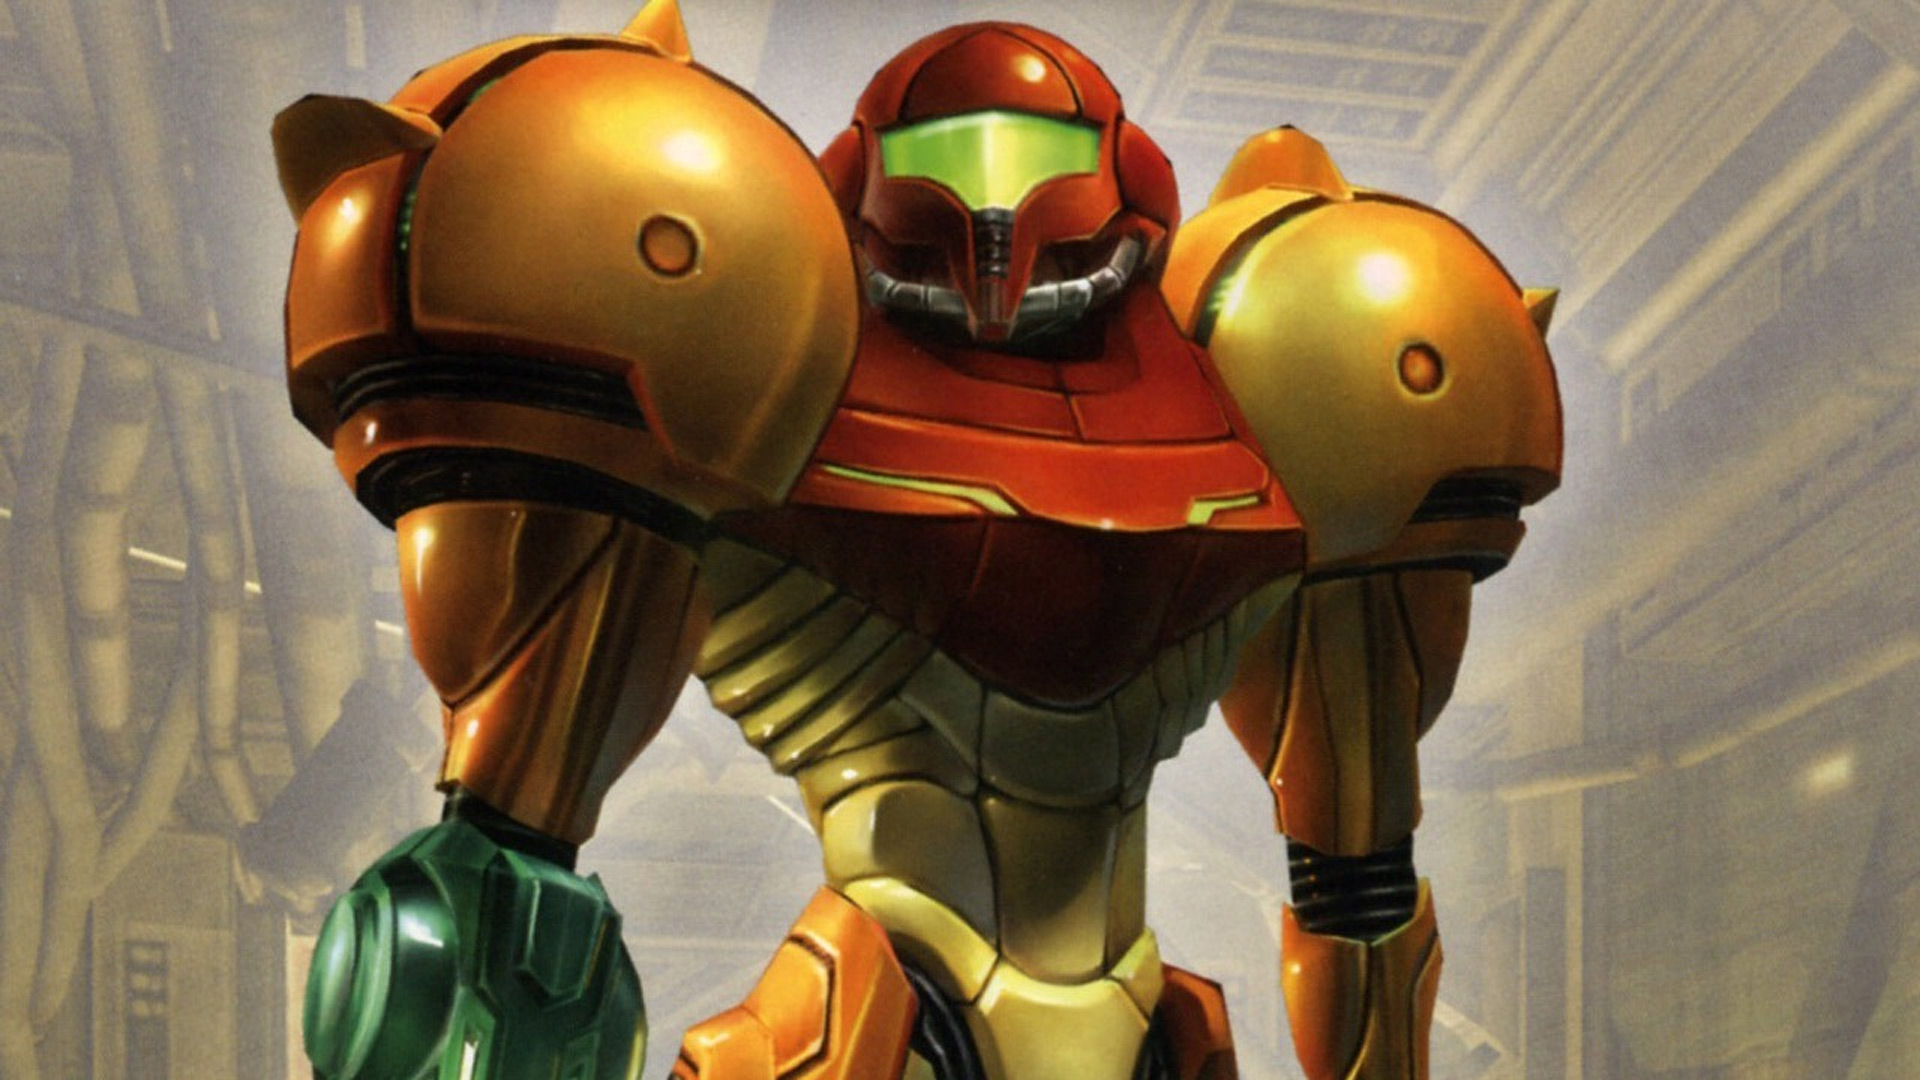 Metroid Prime Nintendo Switch